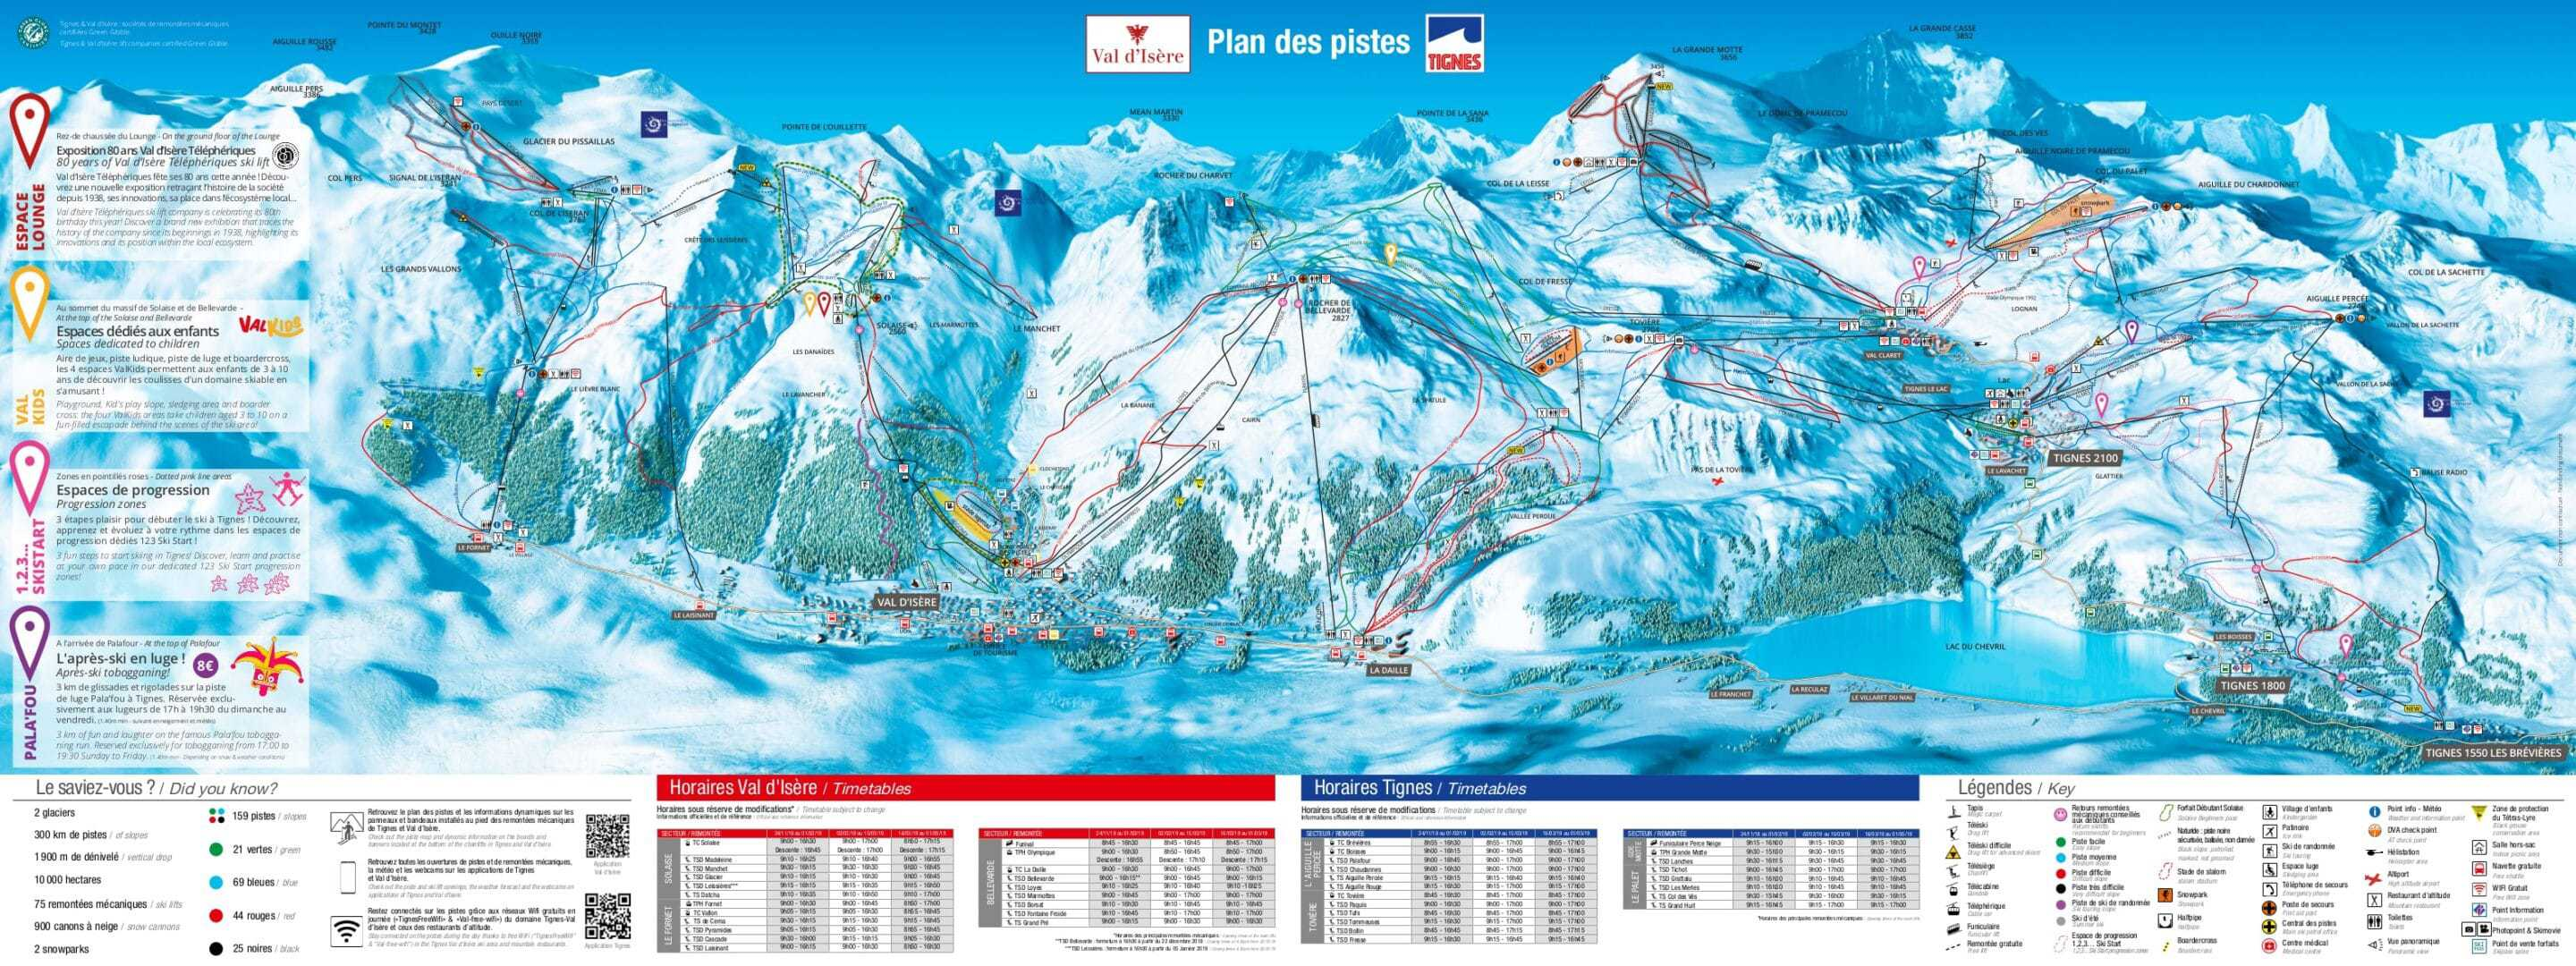 Espace Killy Val d Isere Ski JPG scaled